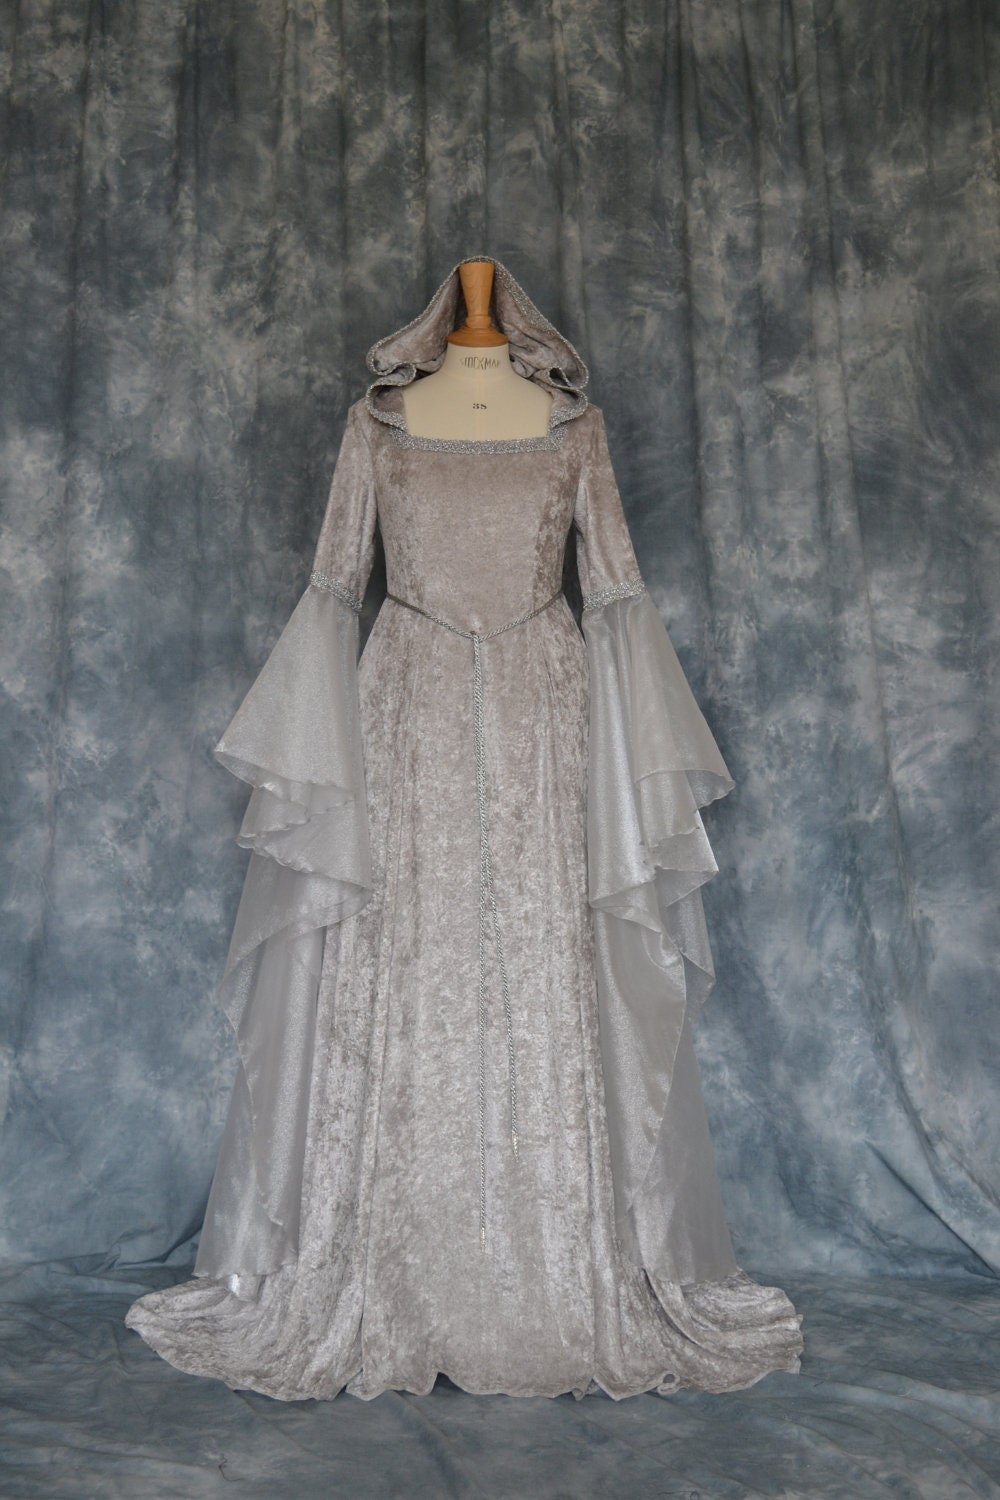 Ceara a pagan medieval elvish hand fasting wedding dress for Have wedding dress made